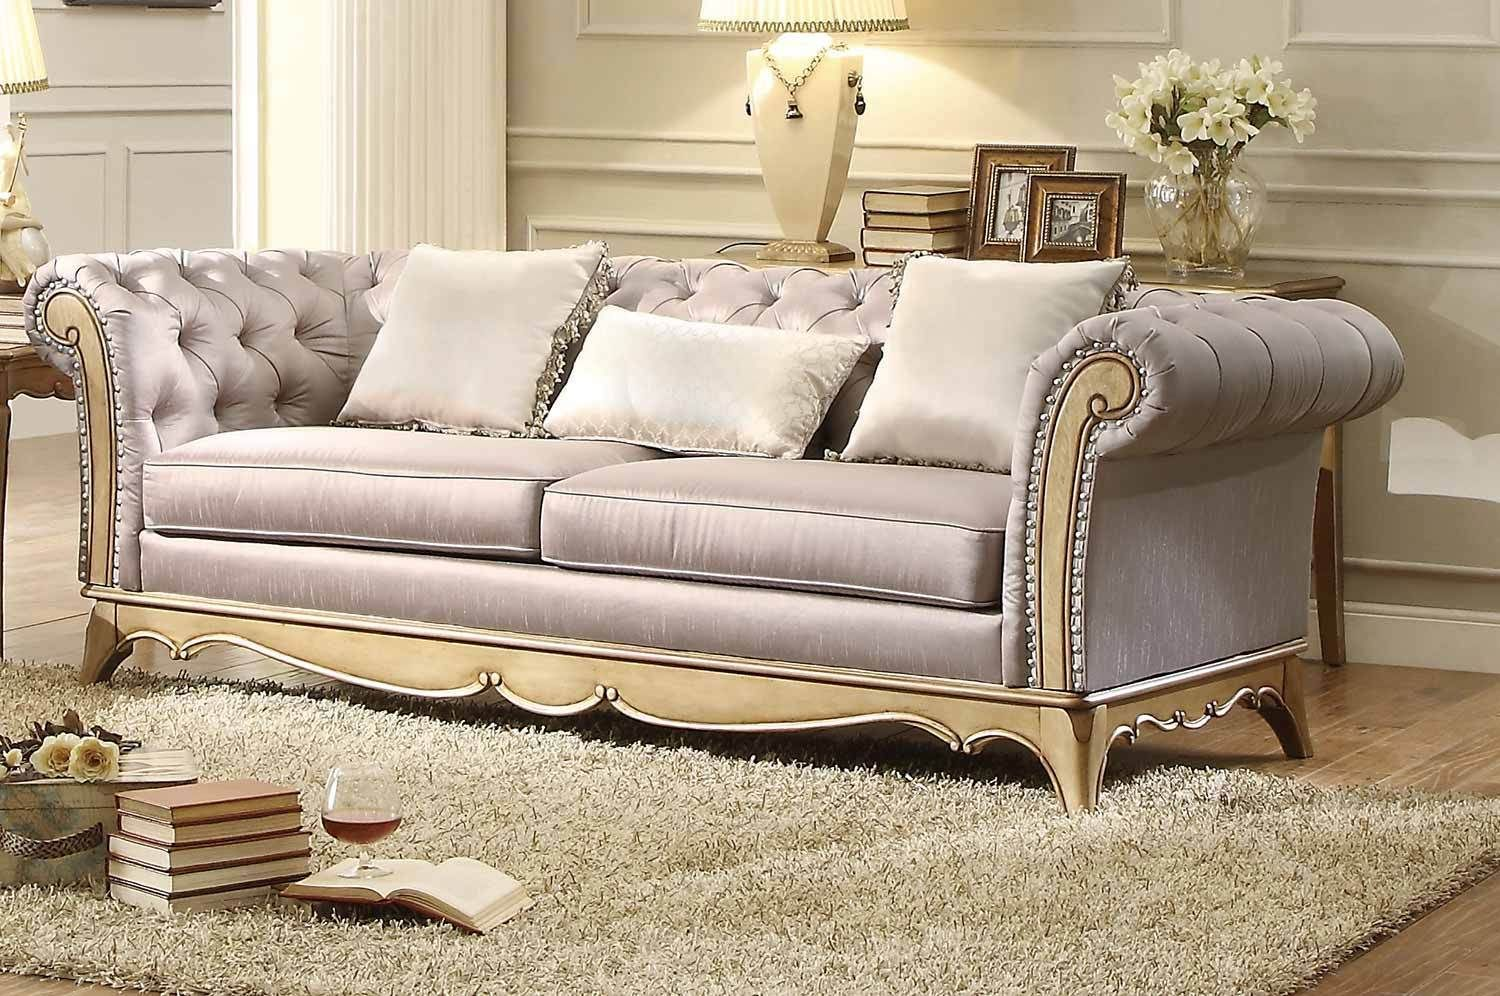 Stunning Faux Silk Upholstered Traditional Tufted Sofa Livingroom Furniture Ebay